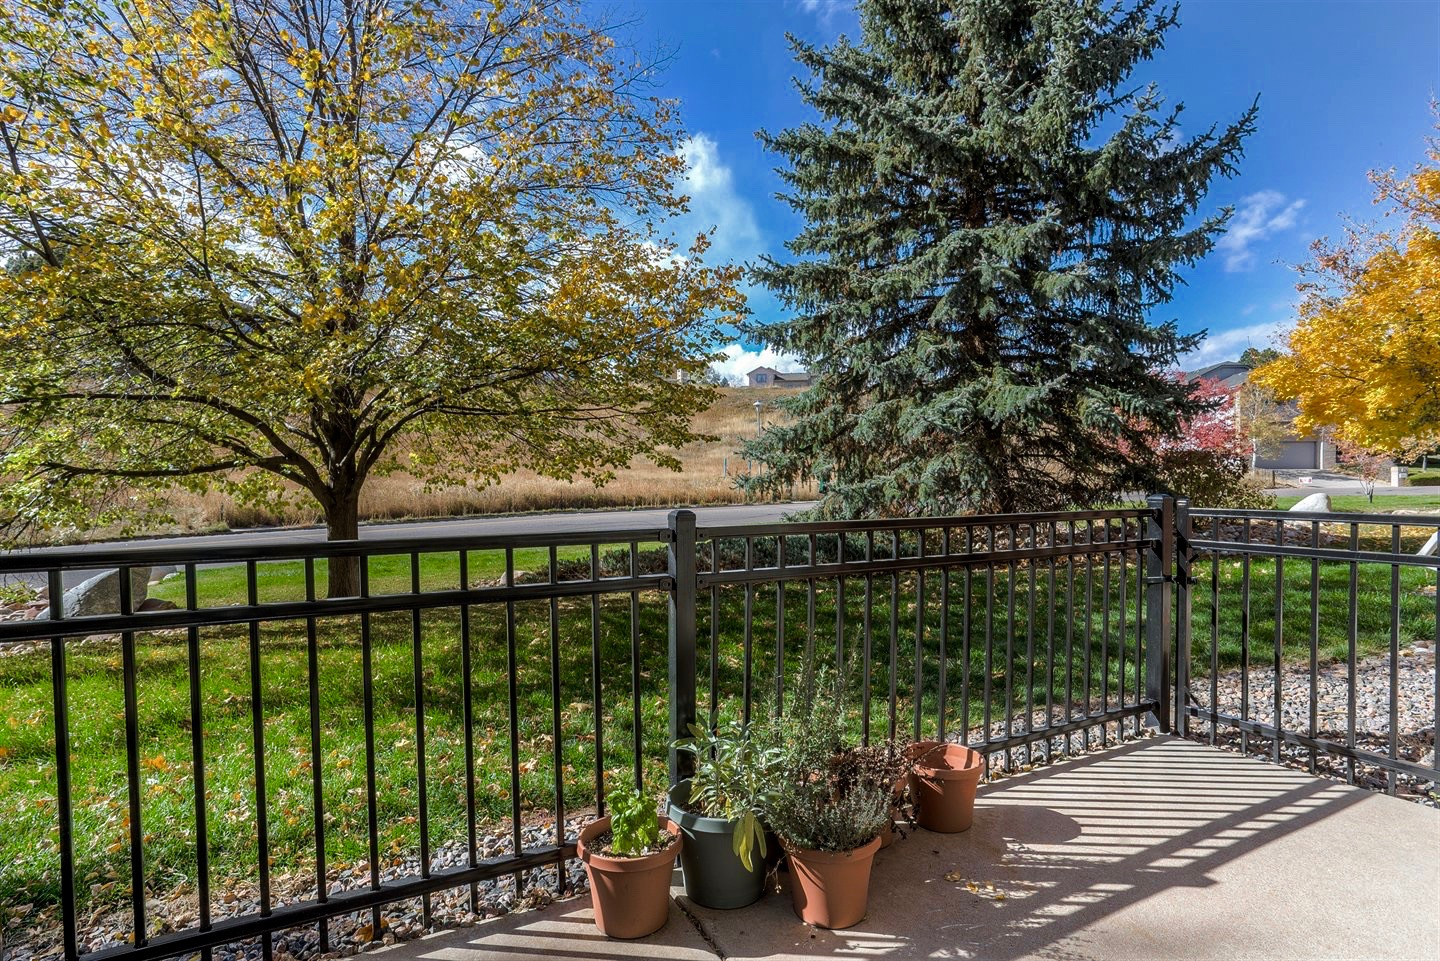 Amberwick Townhome patio area and outlook. Located in Golden, Colorado